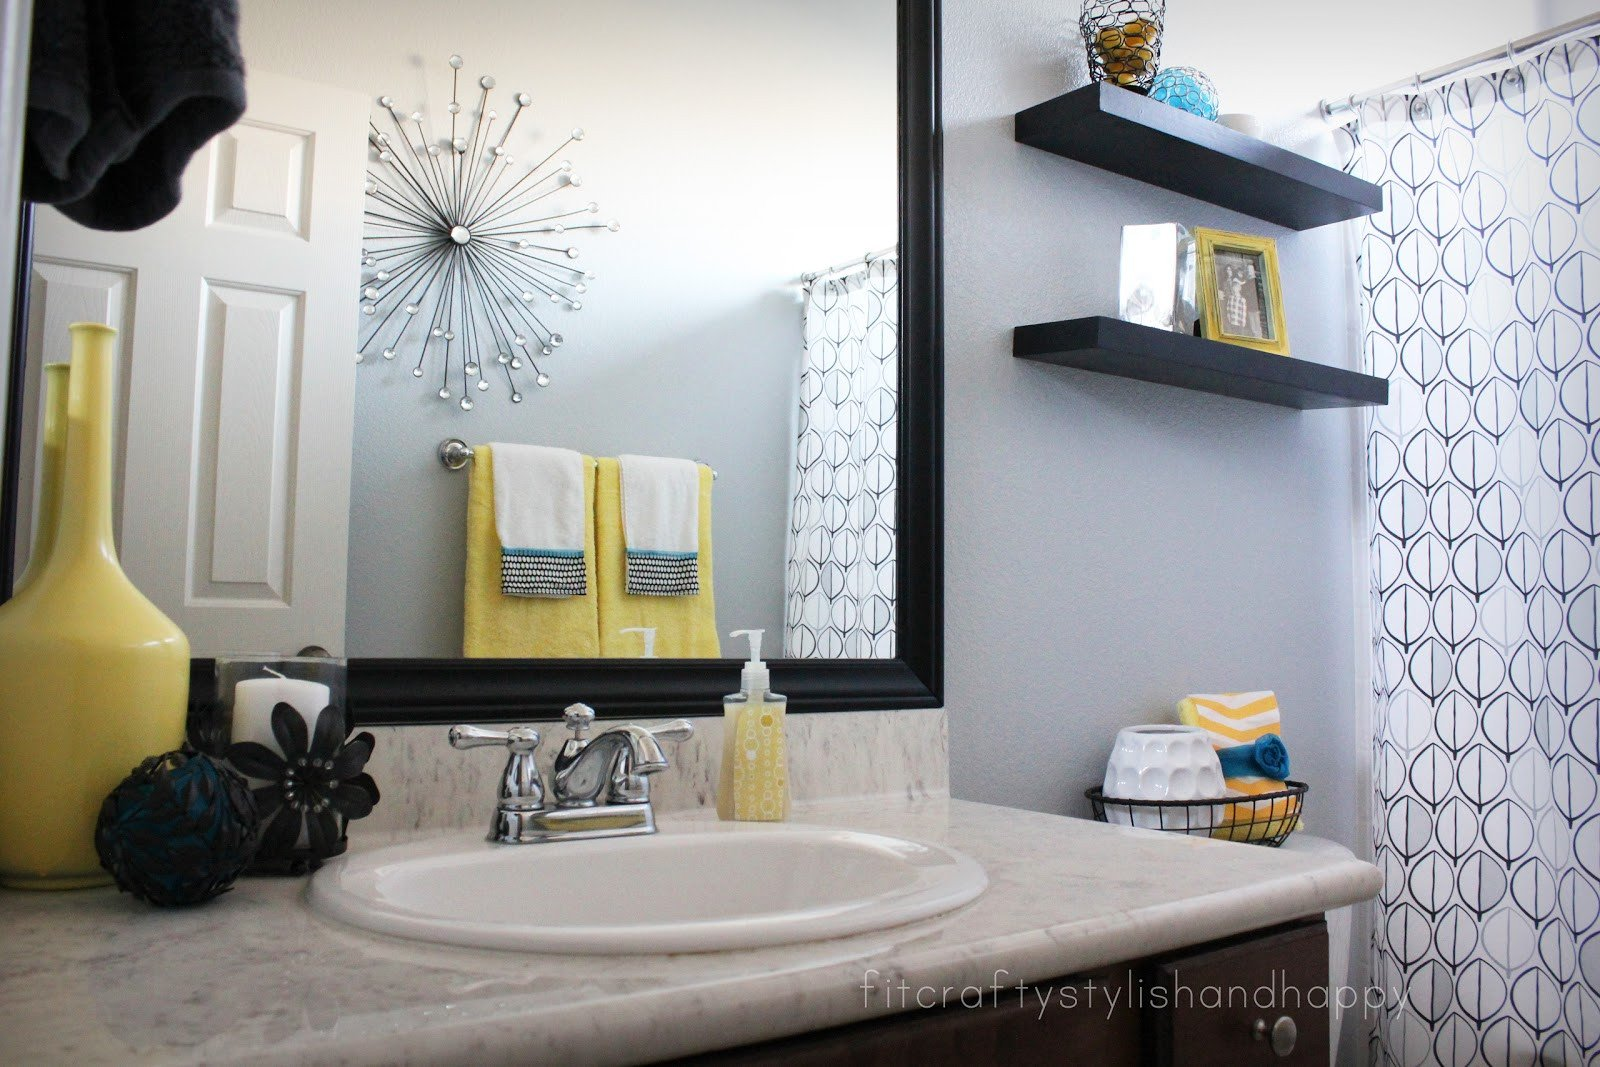 Black and Gray Bathroom Decor Inspirational Fit Crafty Stylish and Happy Guest Bathroom Makeover